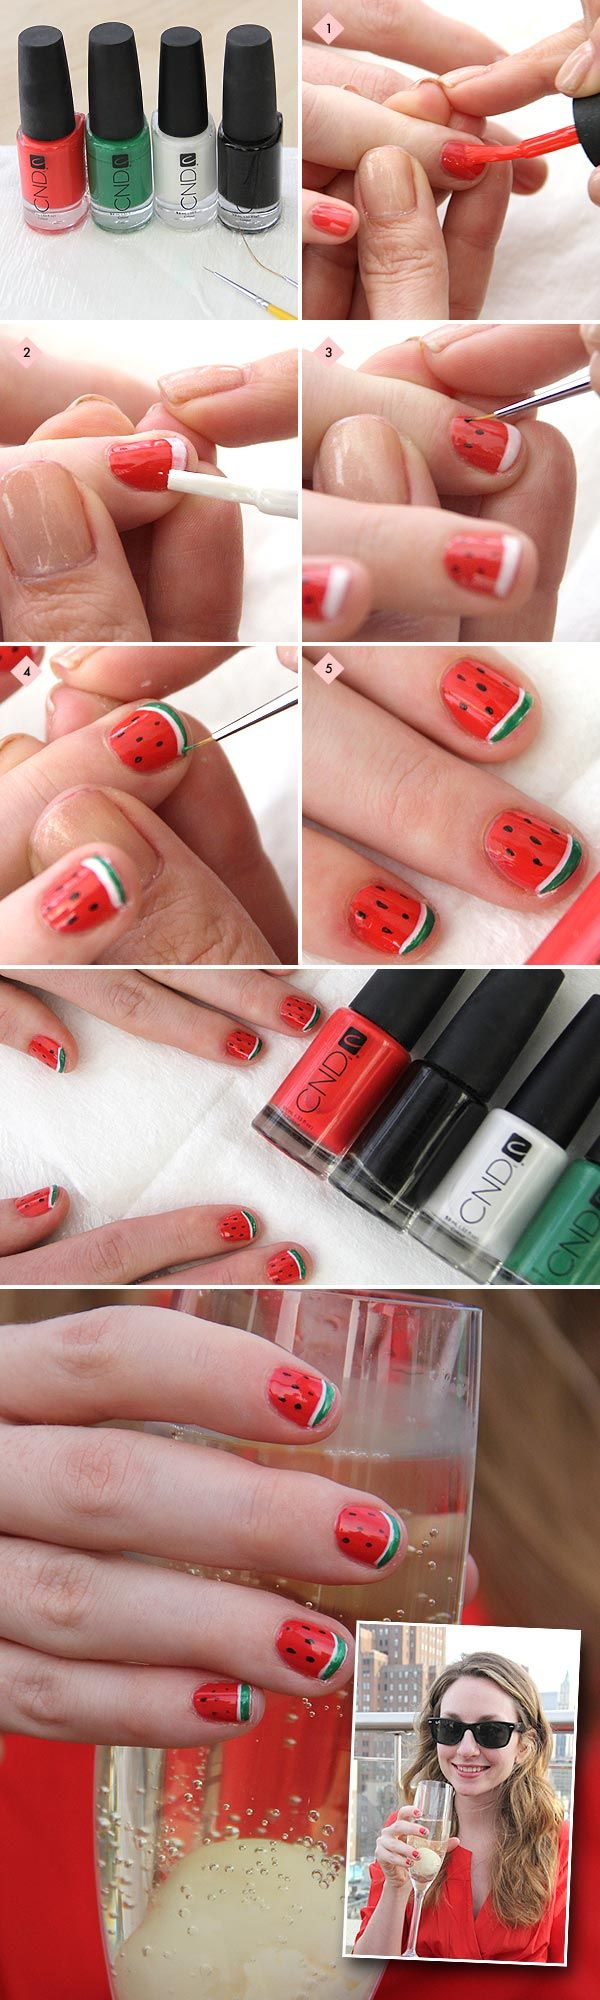 Watermelon mani, anyone? Find out how to get the look!